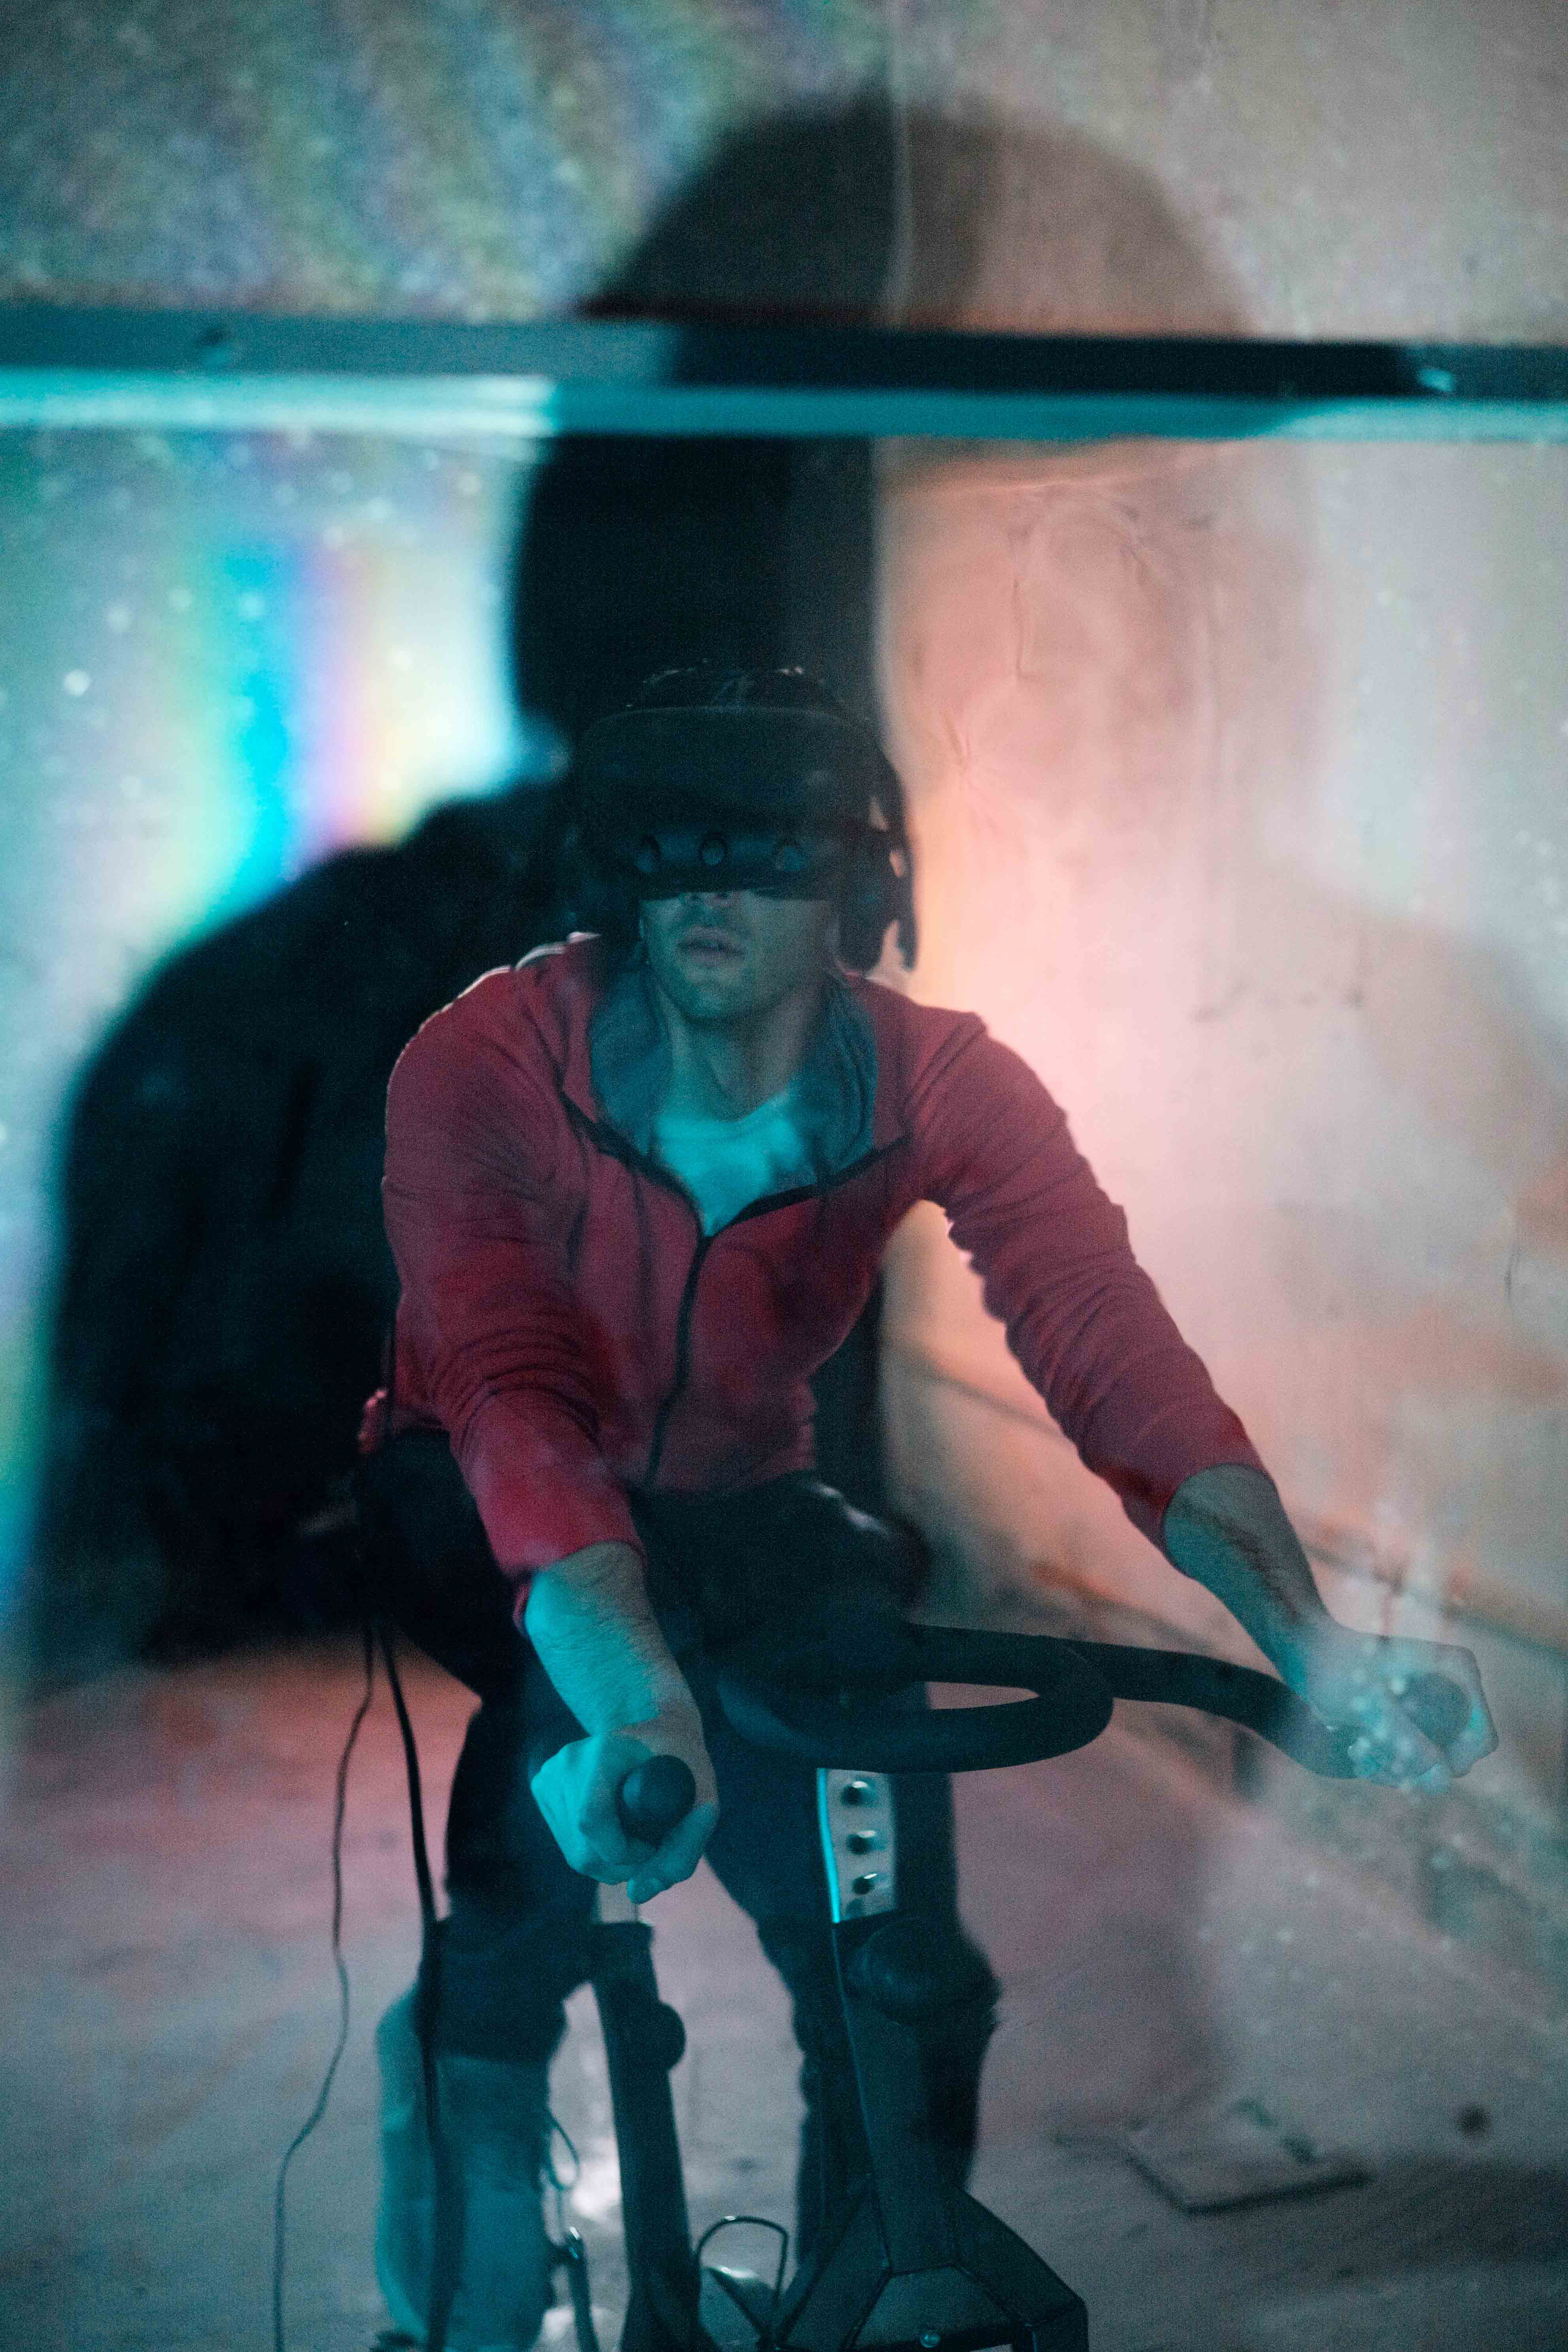 The artist wearing the VR headset whilst using the exercise bike.